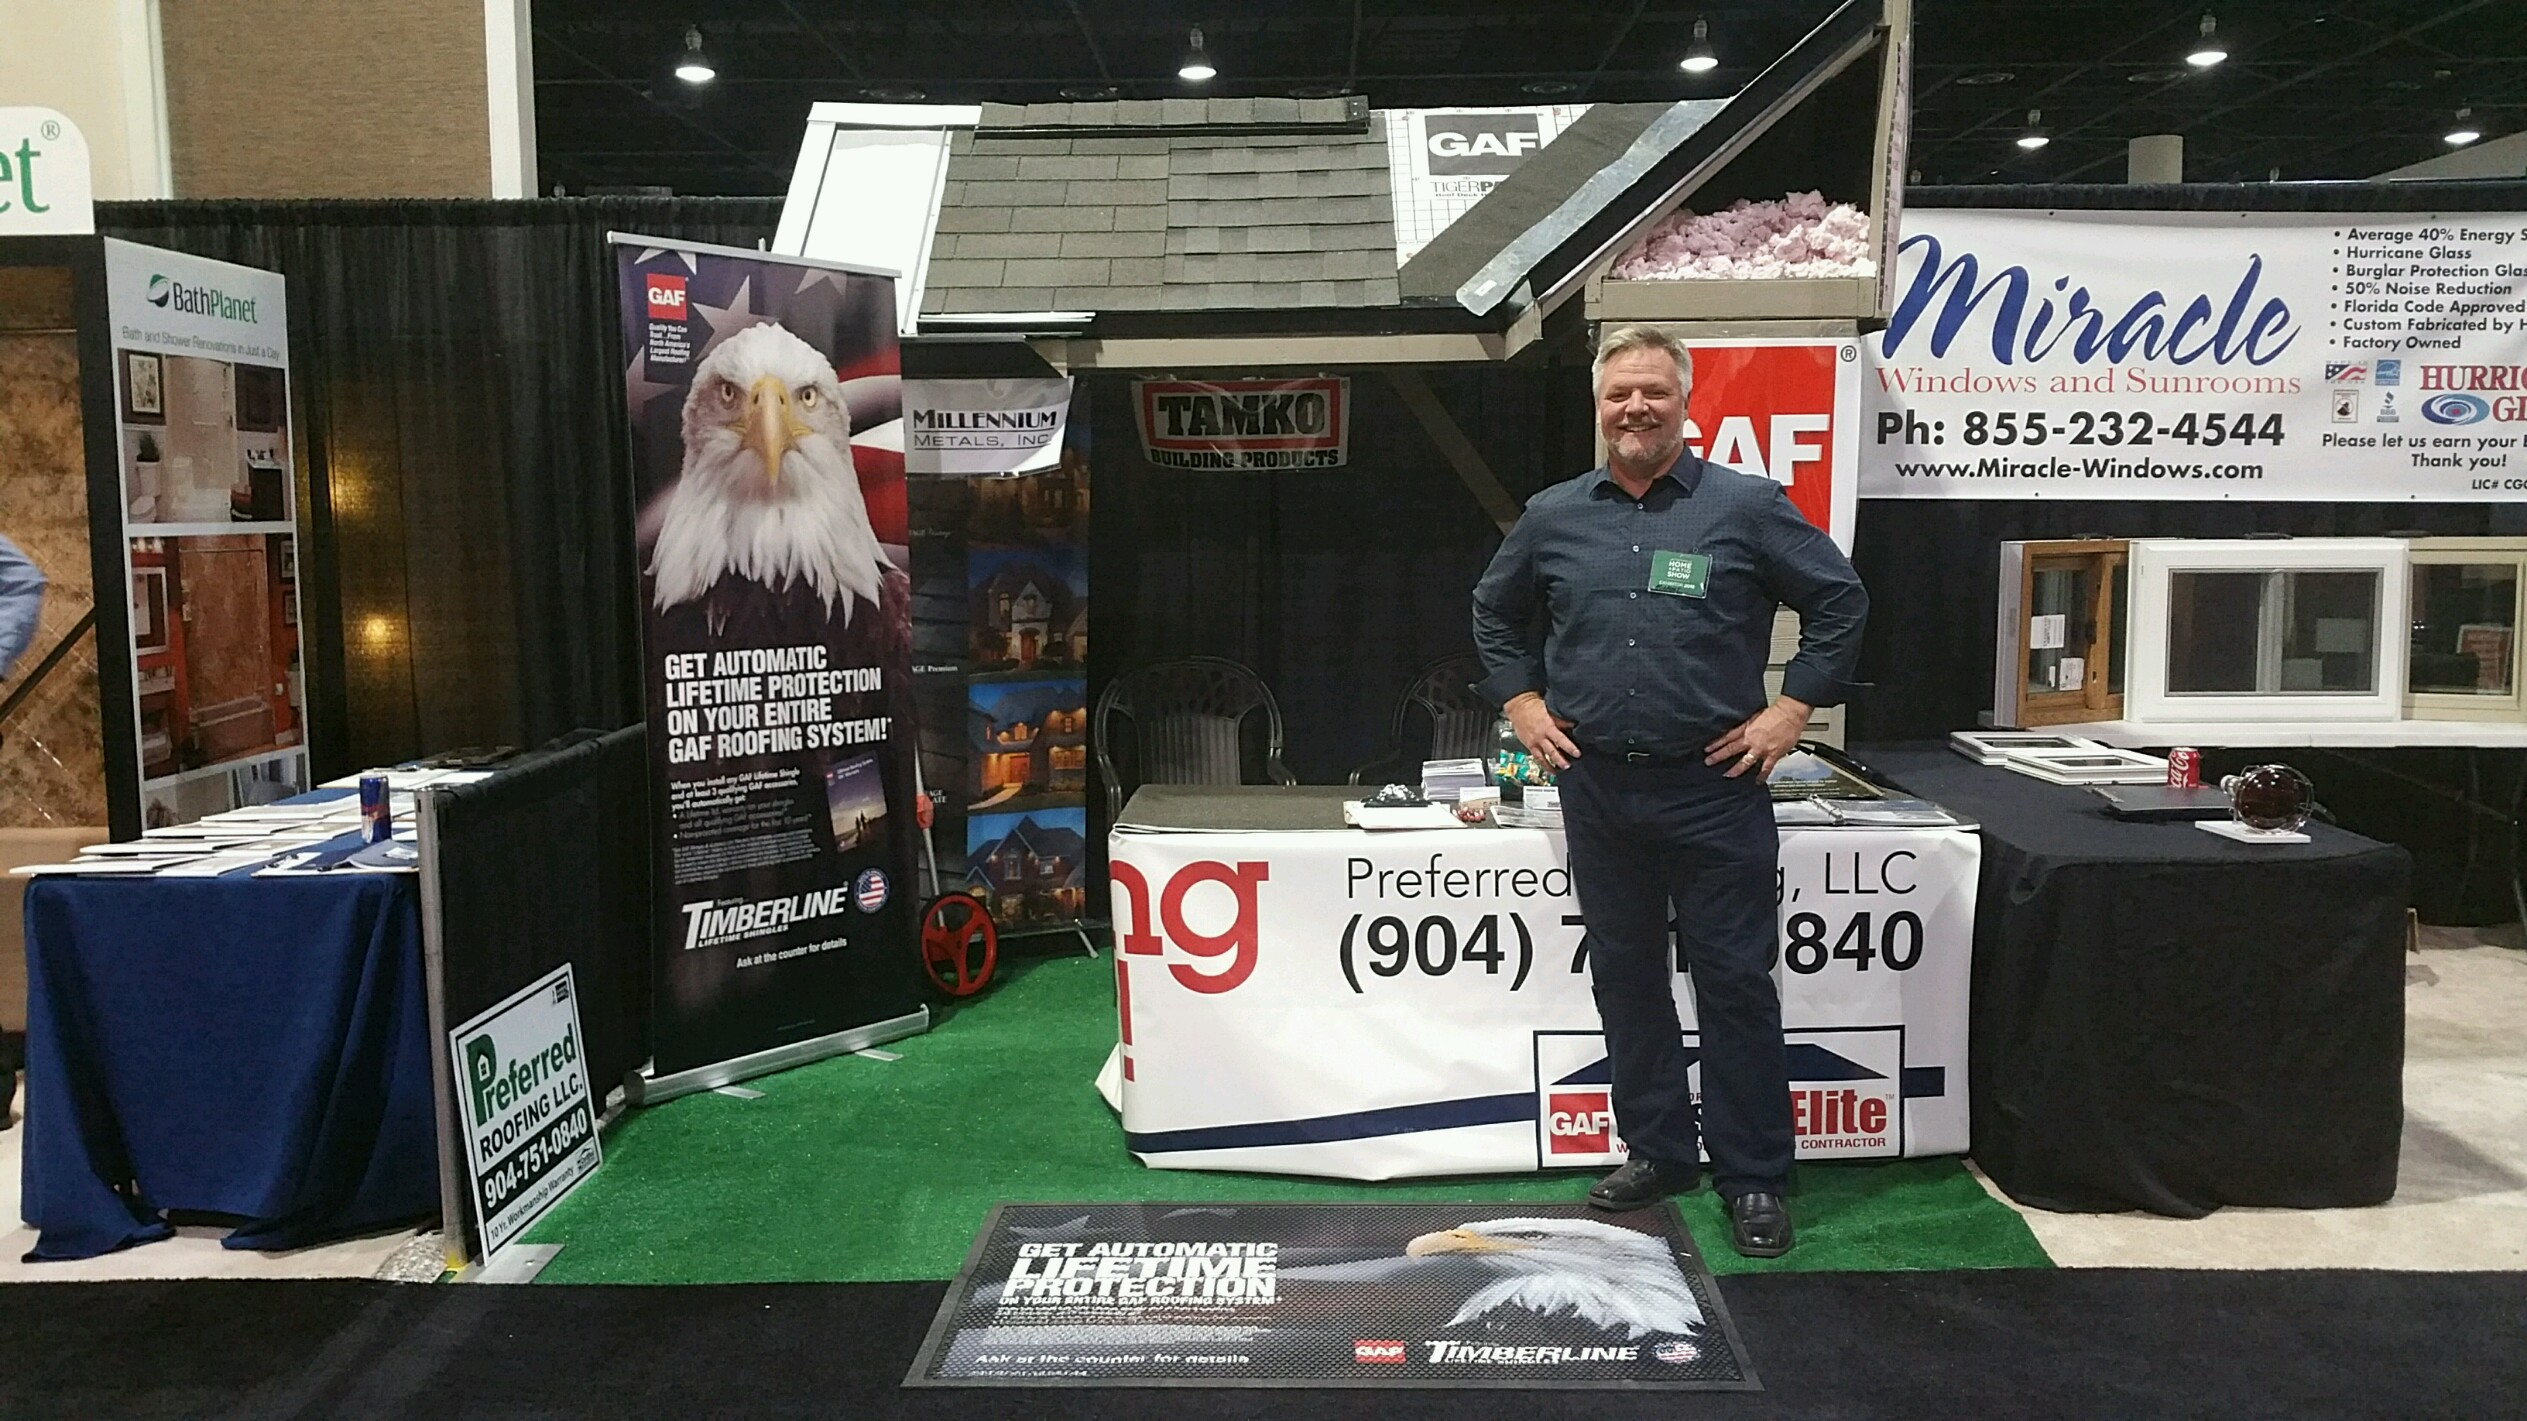 Home and patio show jacksonville florida 2017 Home and garden show jacksonville fl